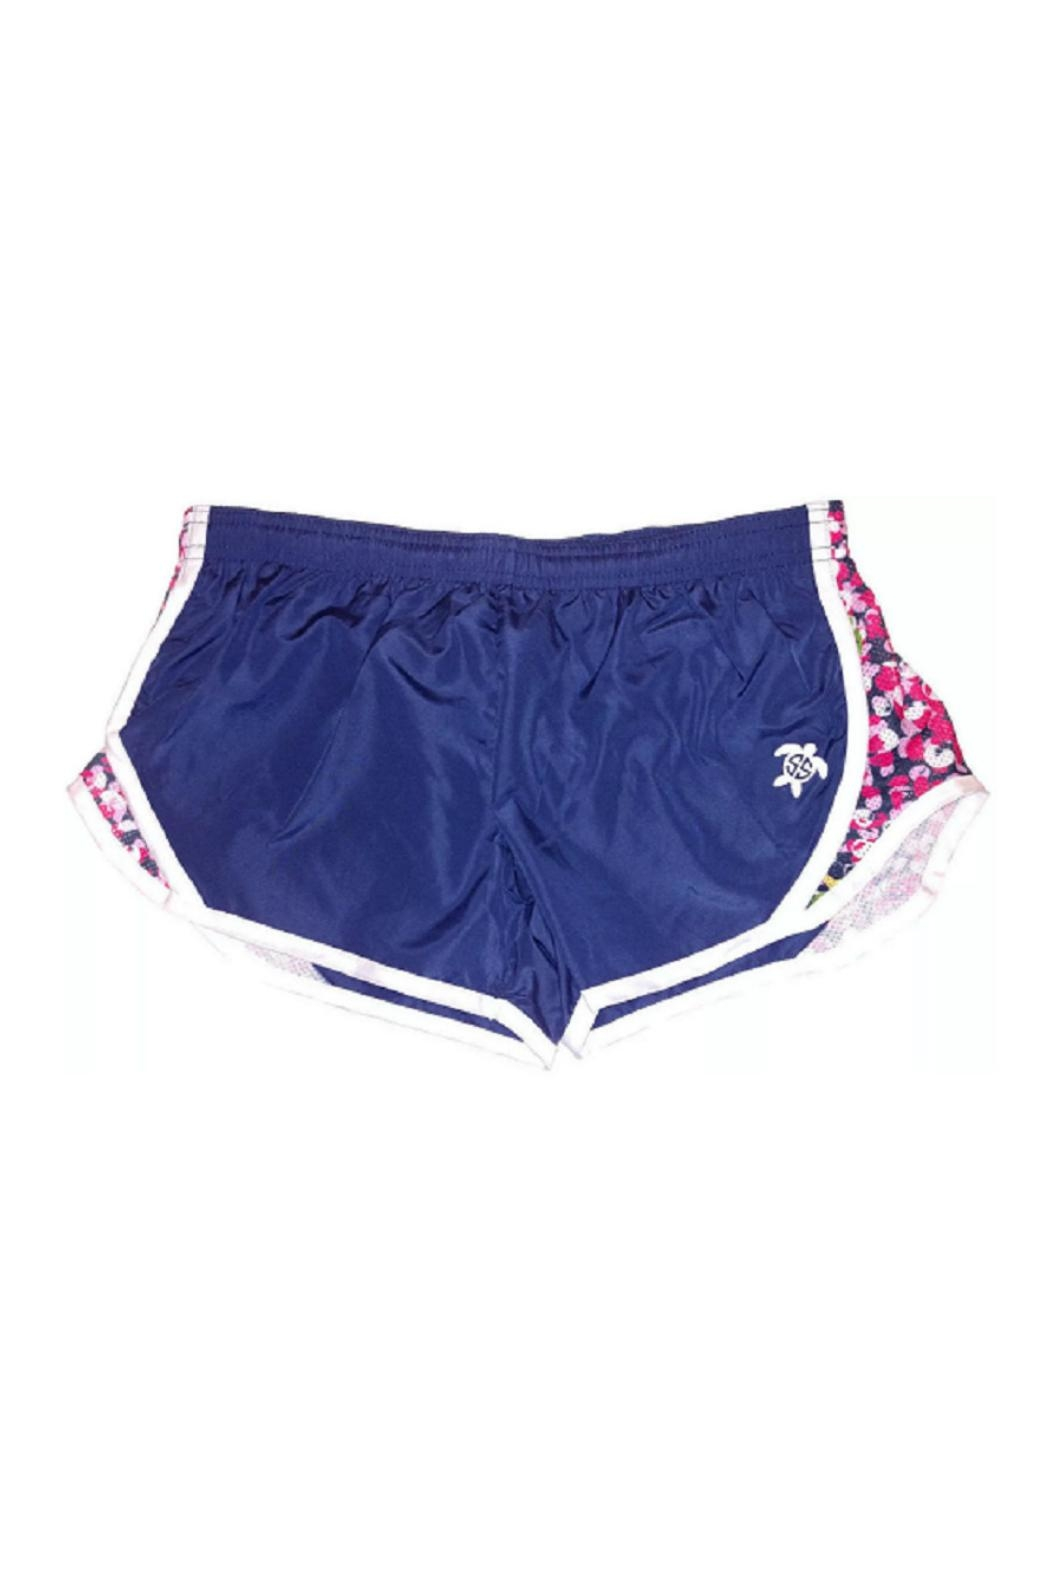 Simply Southern Southern Running Shorts - Front Cropped Image